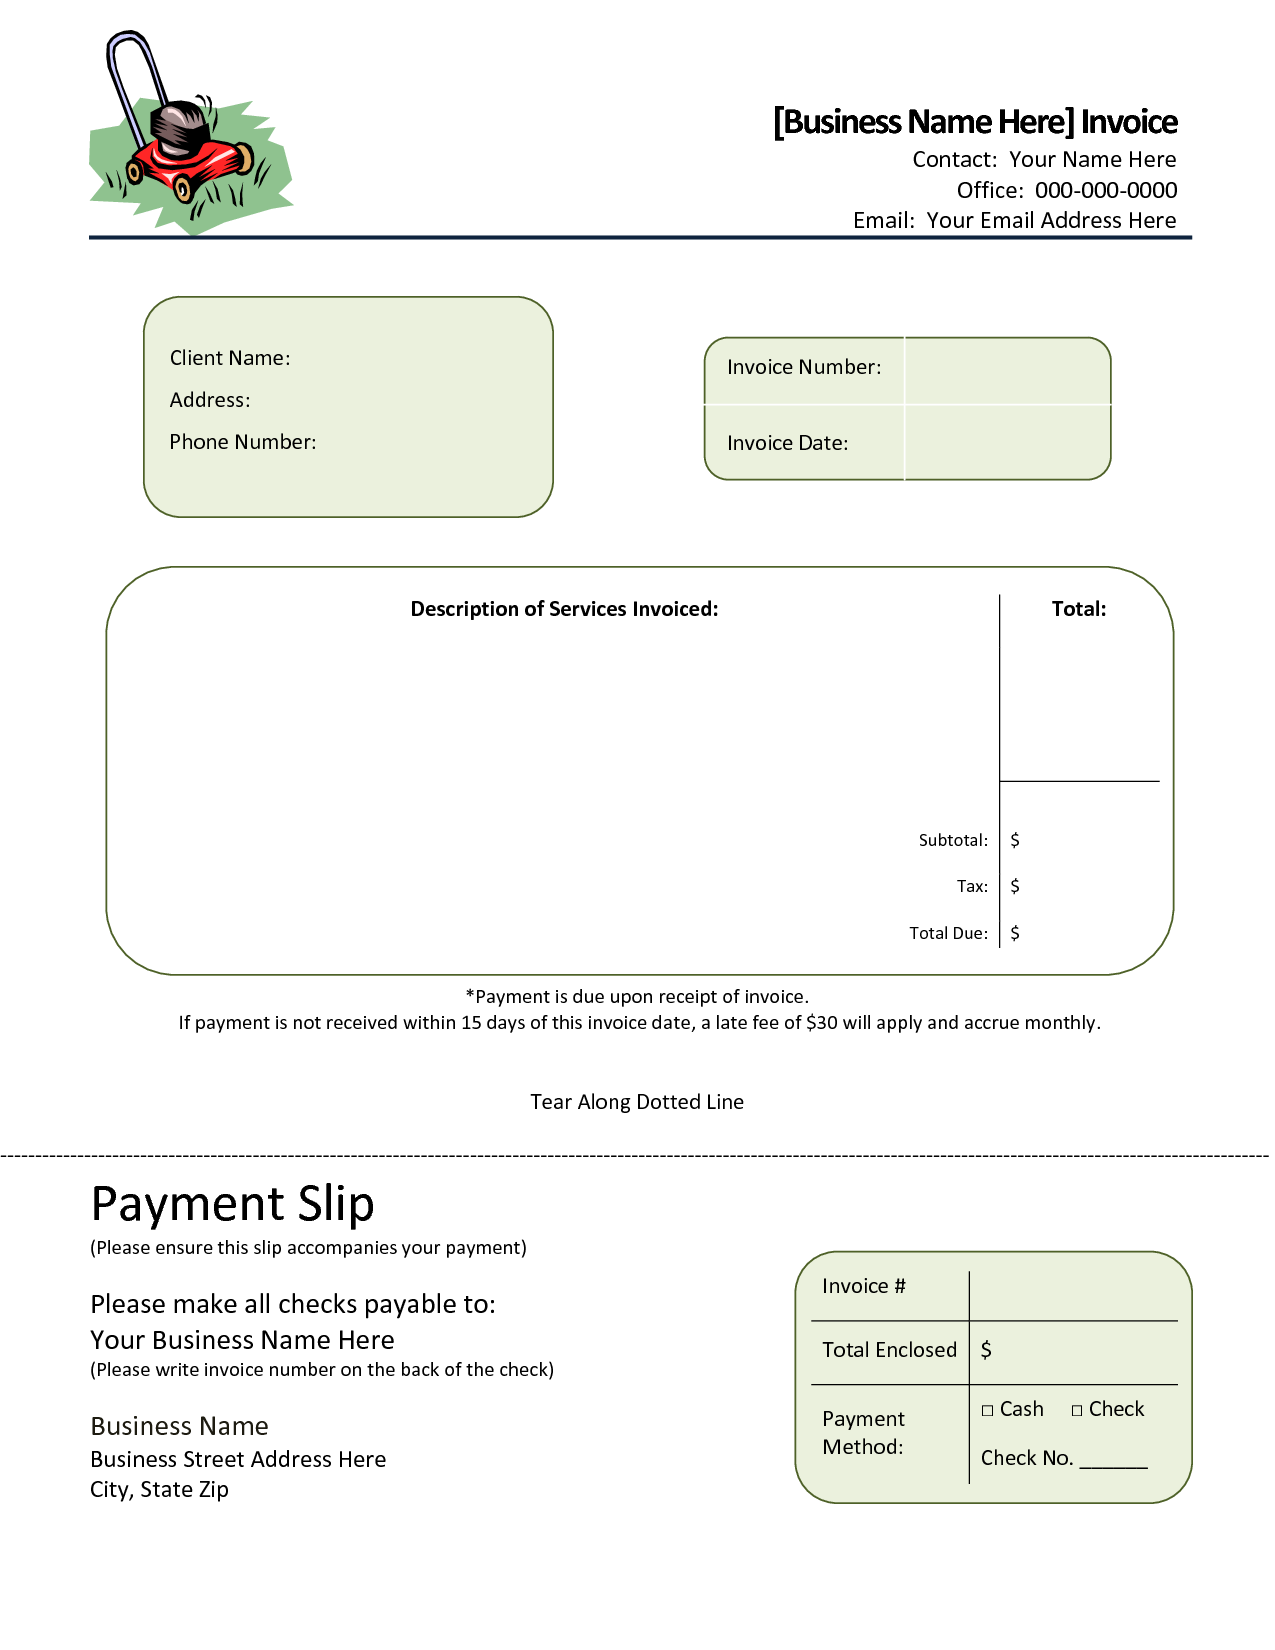 Landscape Invoice Template resume teacher mind mapping artist